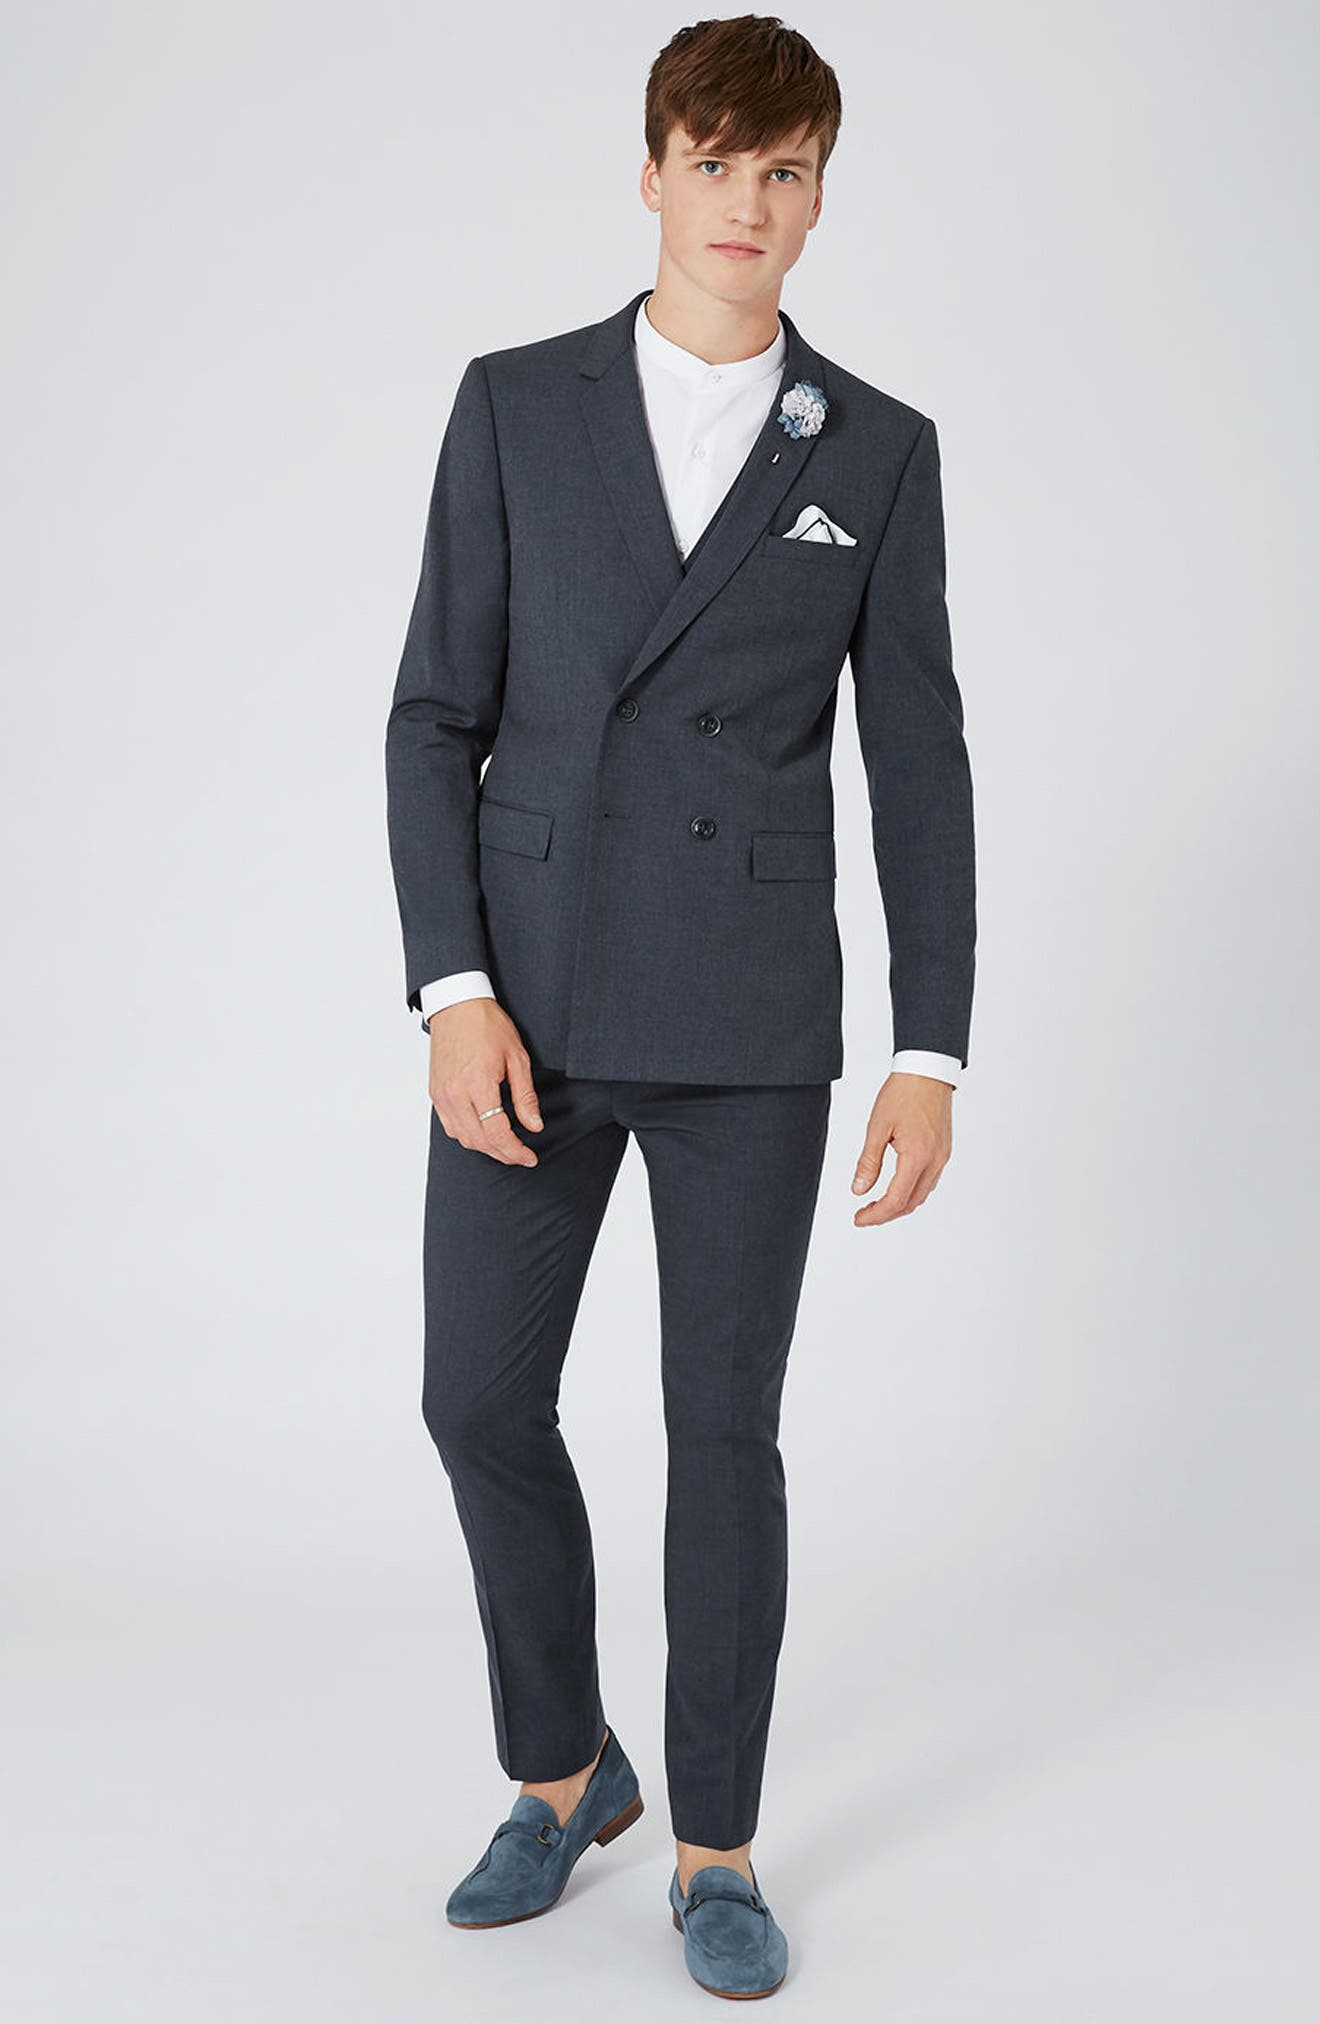 Skinny Fit Double Breasted Suit Jacket,                             Alternate thumbnail 6, color,                             410